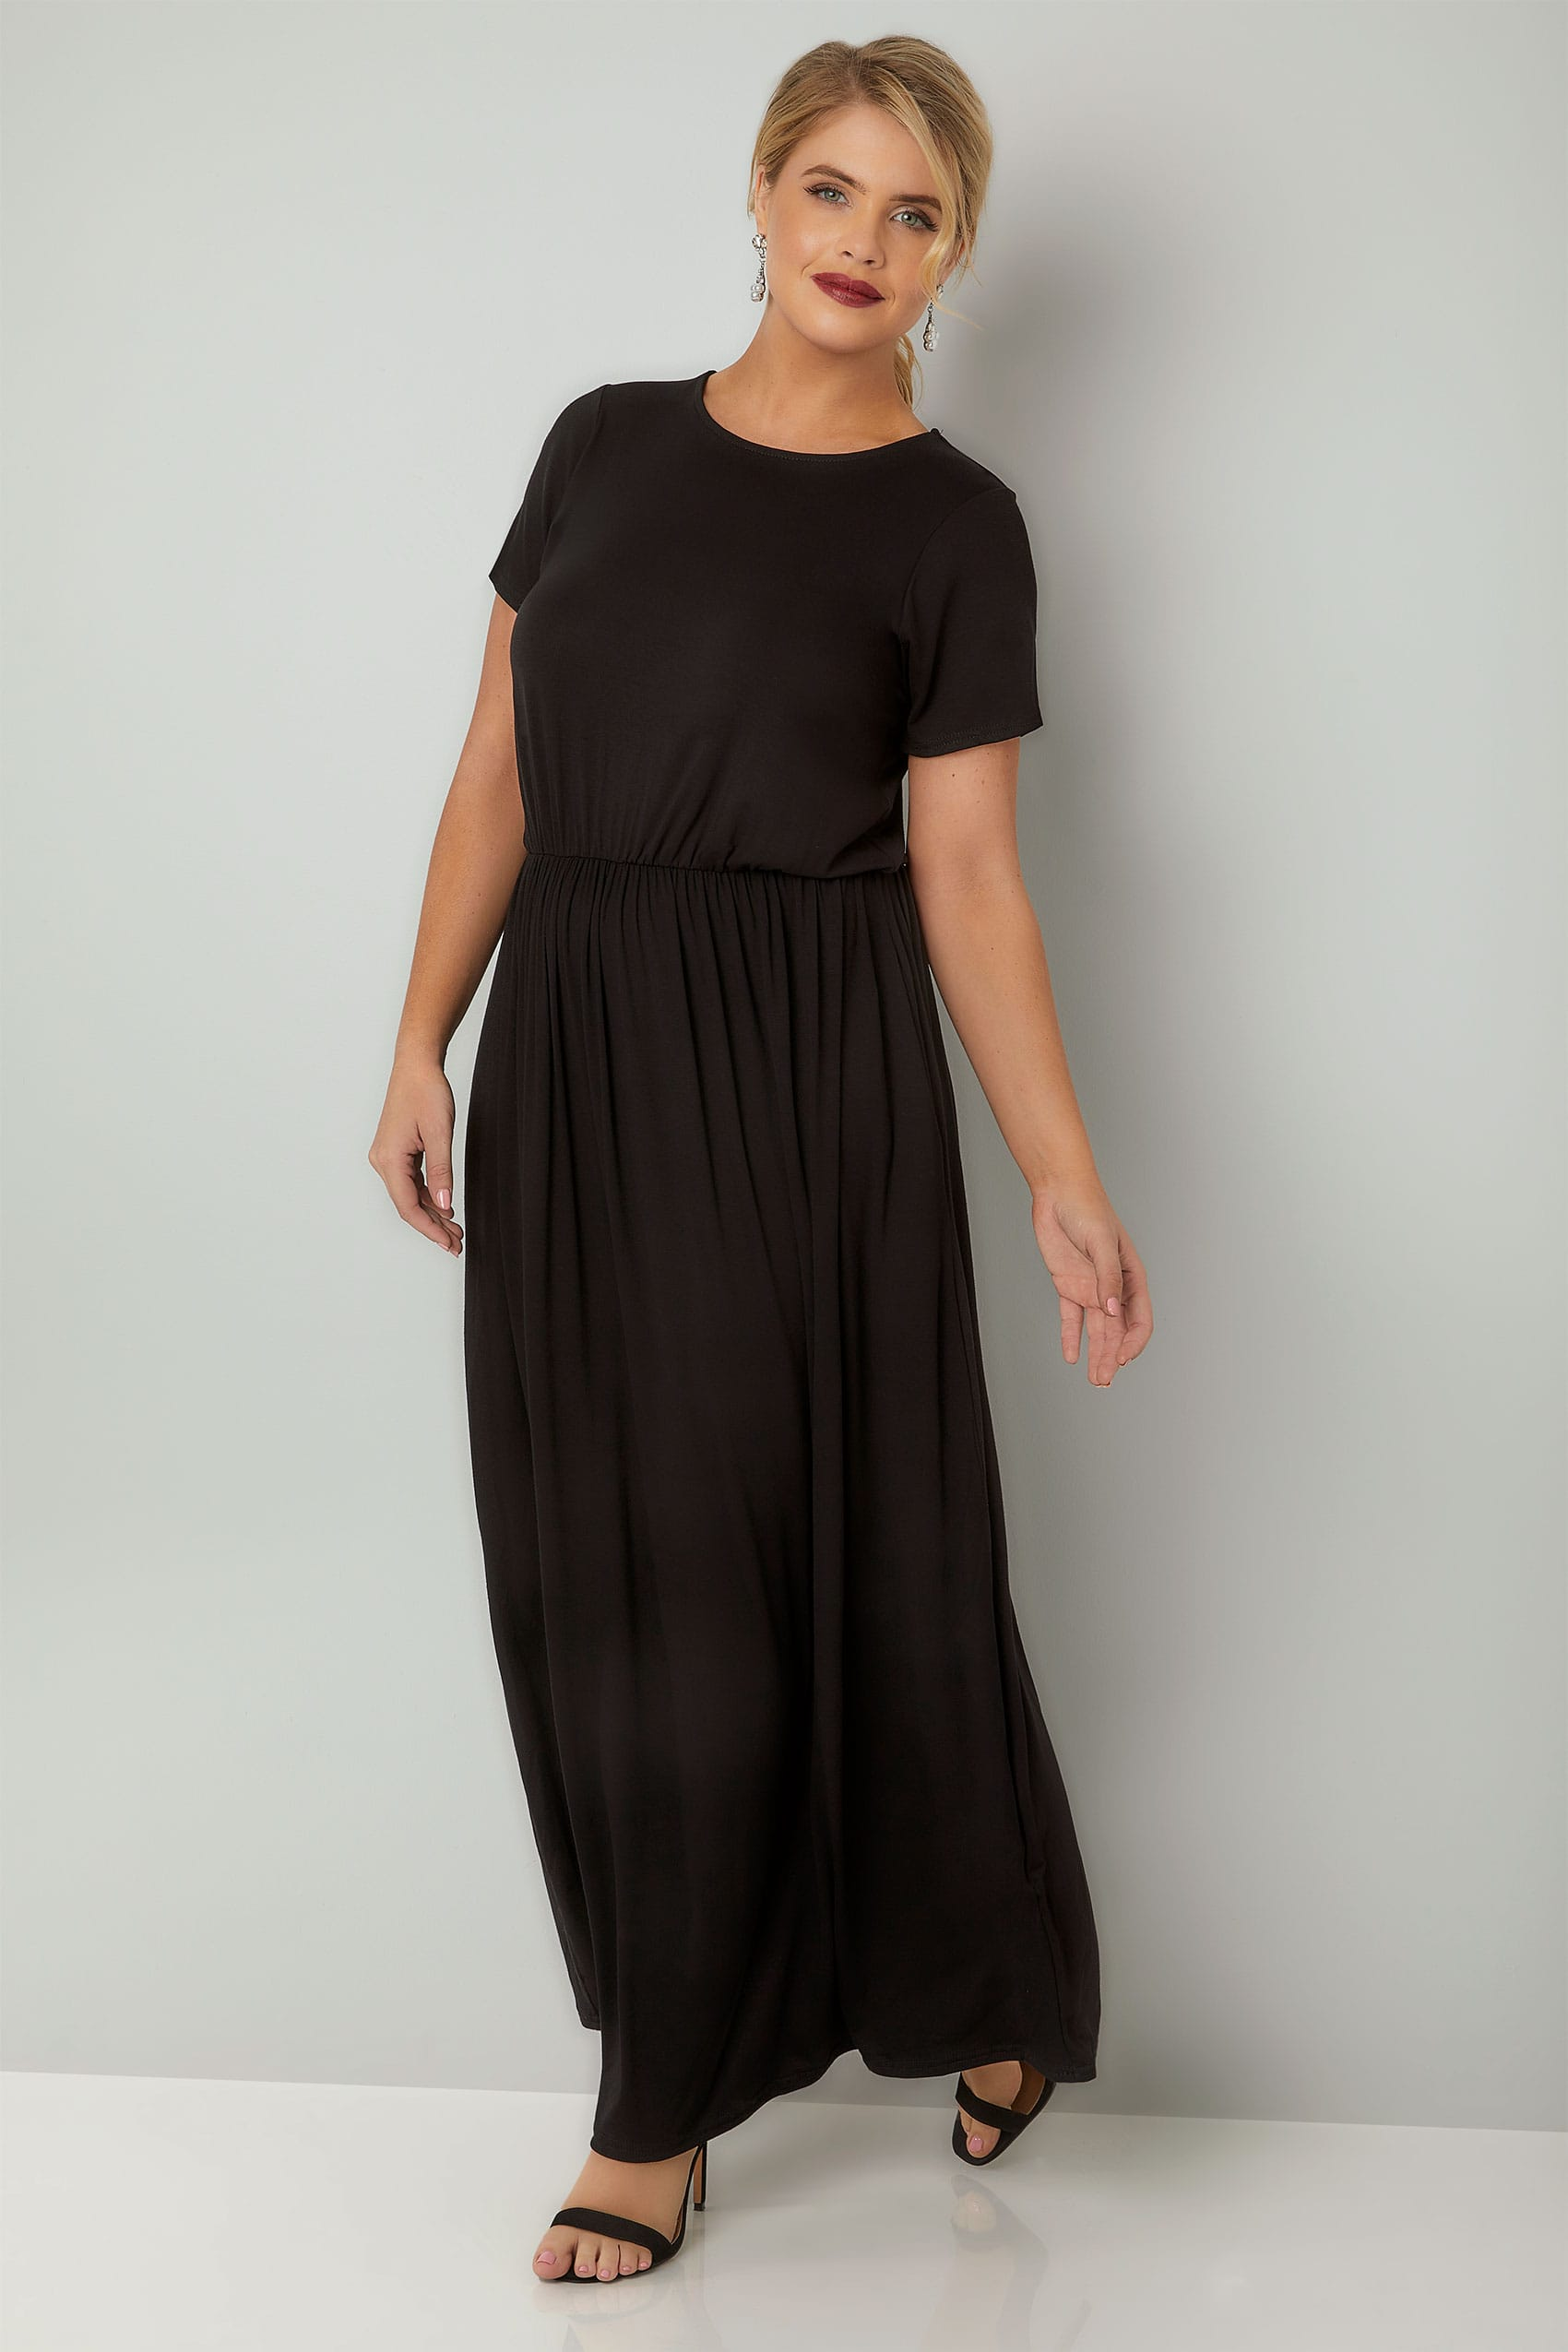 085798f5ba2 Plus Size Maxi Dresses YOURS LONDON Black Maxi Dress With Elasticated Waist